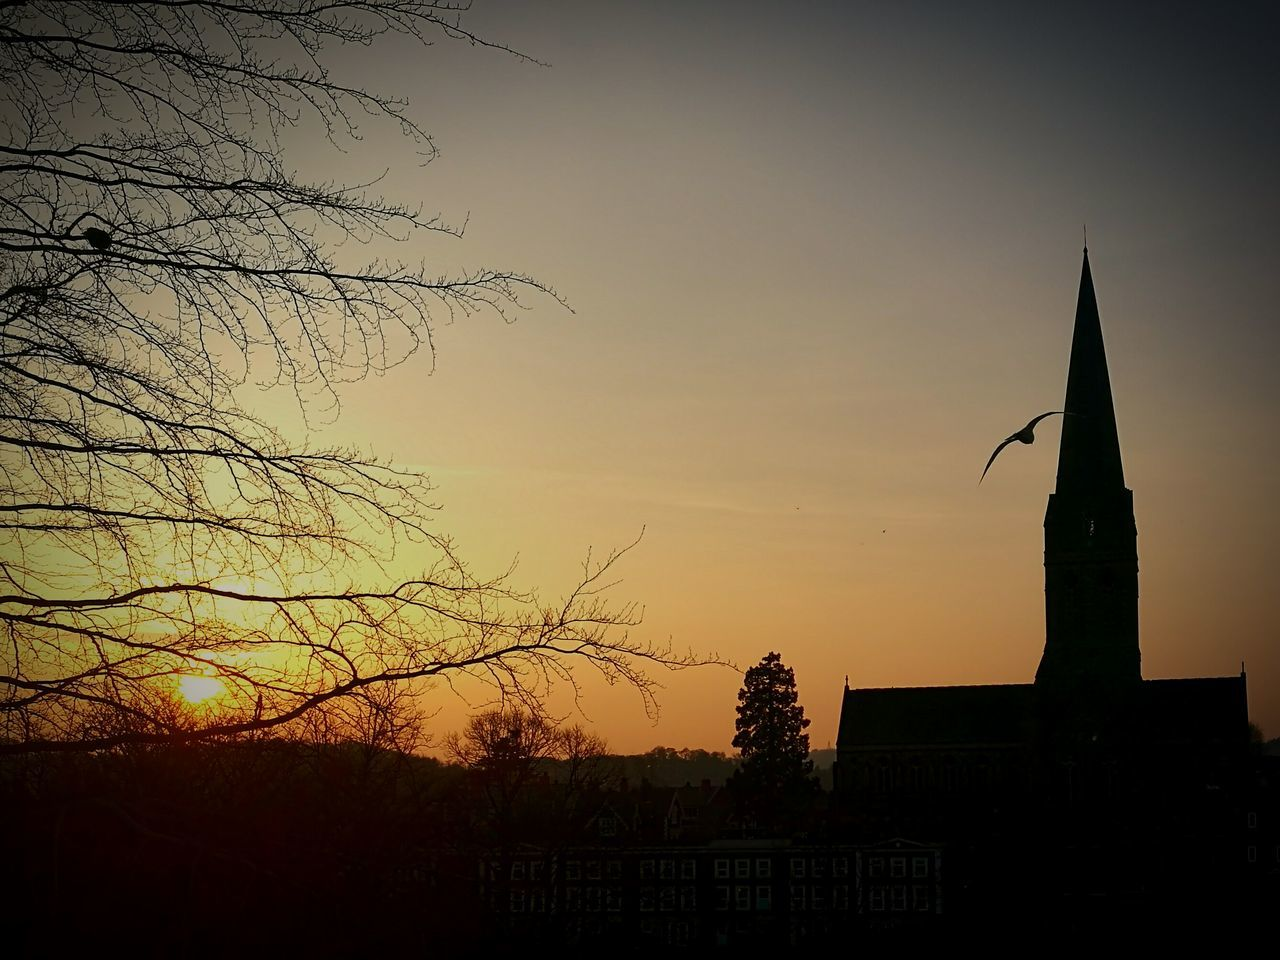 sunset, silhouette, architecture, built structure, orange color, building exterior, sky, tree, no people, bare tree, outdoors, nature, beauty in nature, city, day